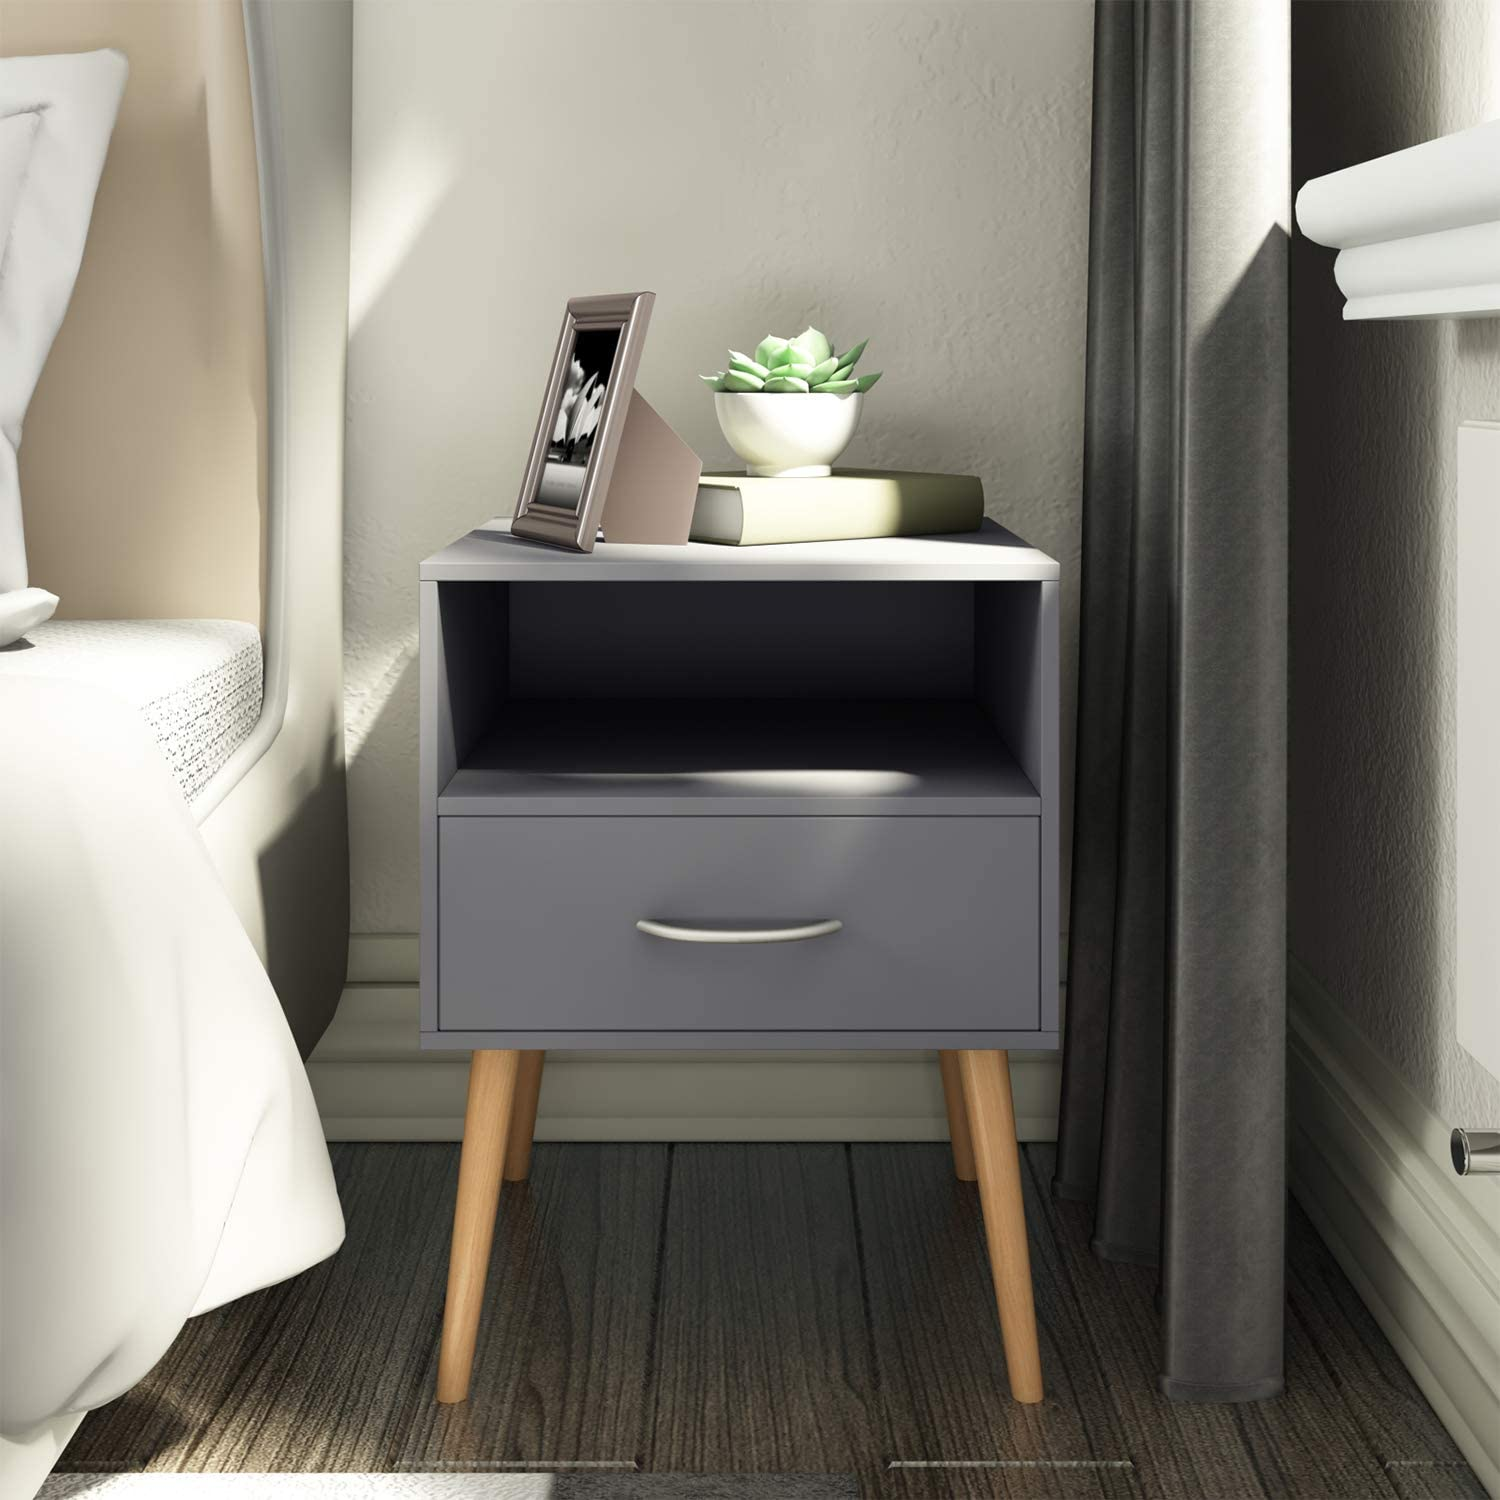 Joolihome Grey Wooden Bedside Table With Drawers&Silver Handle Scandinavian  Style 9 Tier Bedside Cabinet End Table Side Table Nightstand Bedroom